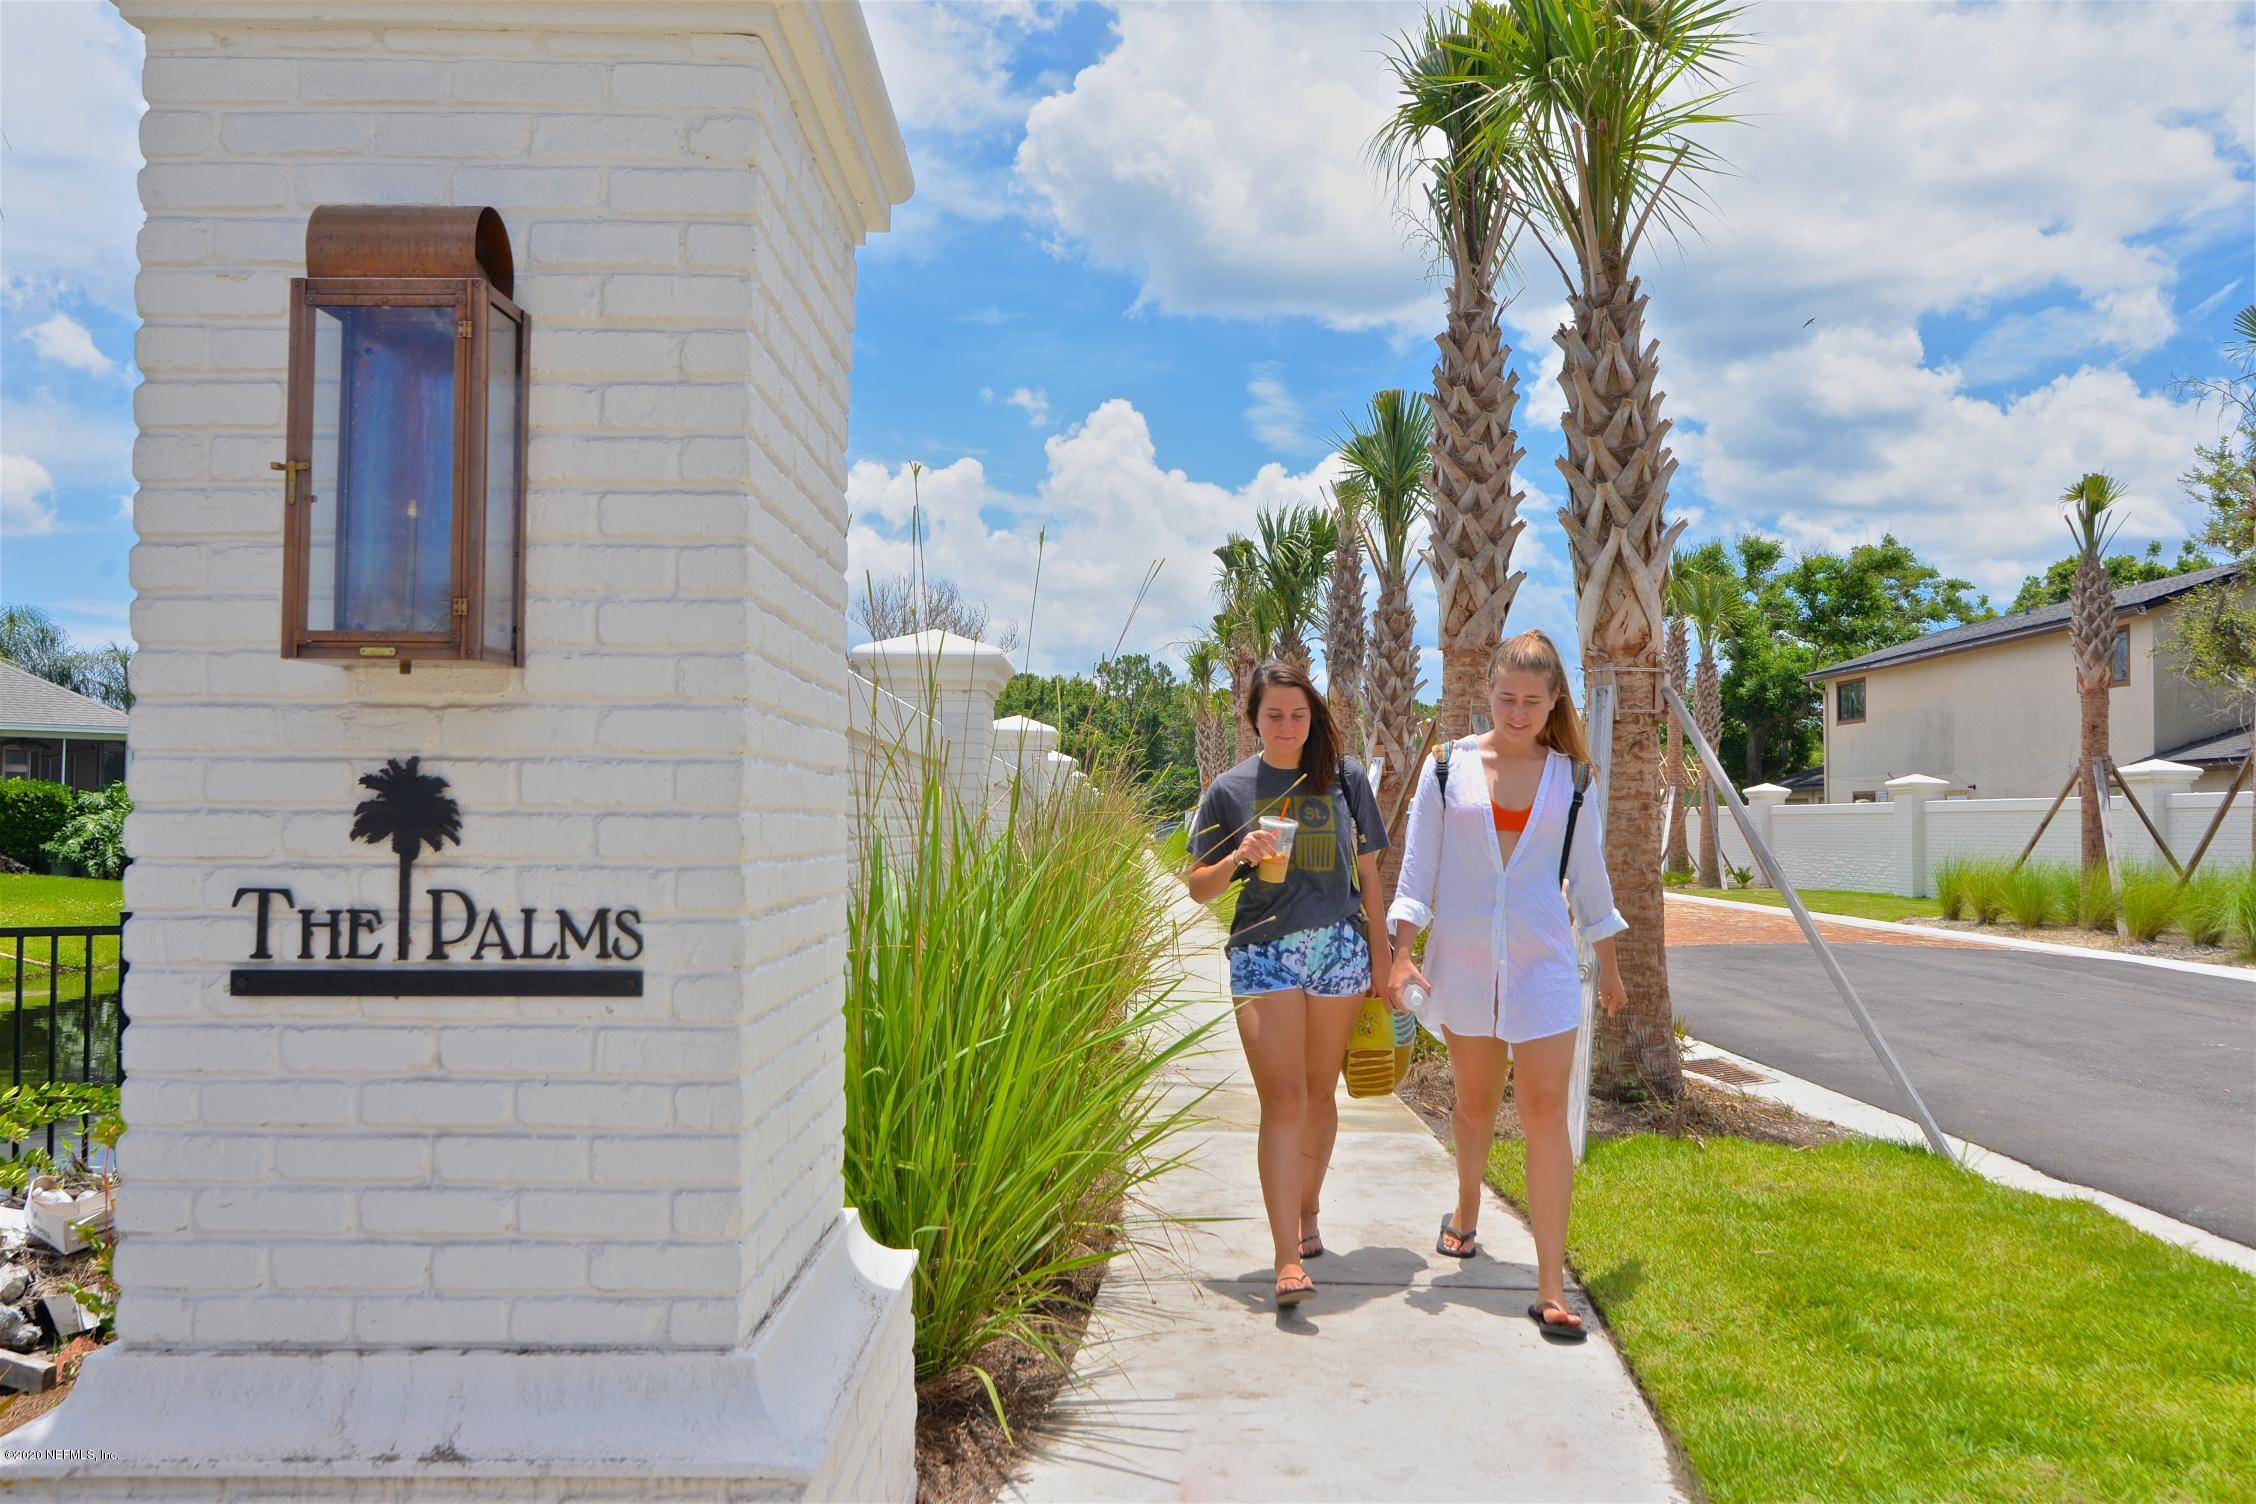 The Palms at Old Ponte Vedra, steps to the Beach & the Lodge & Club. This Custom Home features a Pool, 4 BR, 4.5 Baths (plus a Pool Bath), 1st floor Study, Butler's Kitchen, 2nd floor Gathering Room, Flex Room, and 2-Car Garage w/ ample storage.  Open Floorplan, Built-in Wine Cellar, 2nd FL Wet Bar, Fireplace in FR & Amazing Outdoor Living. Natural Gas Community. St. Johns Co Schools. Exceptional QUALITY.  Coastal Architectural Style with Cedar Shake Shingles, Stucco and a Metal Roof.